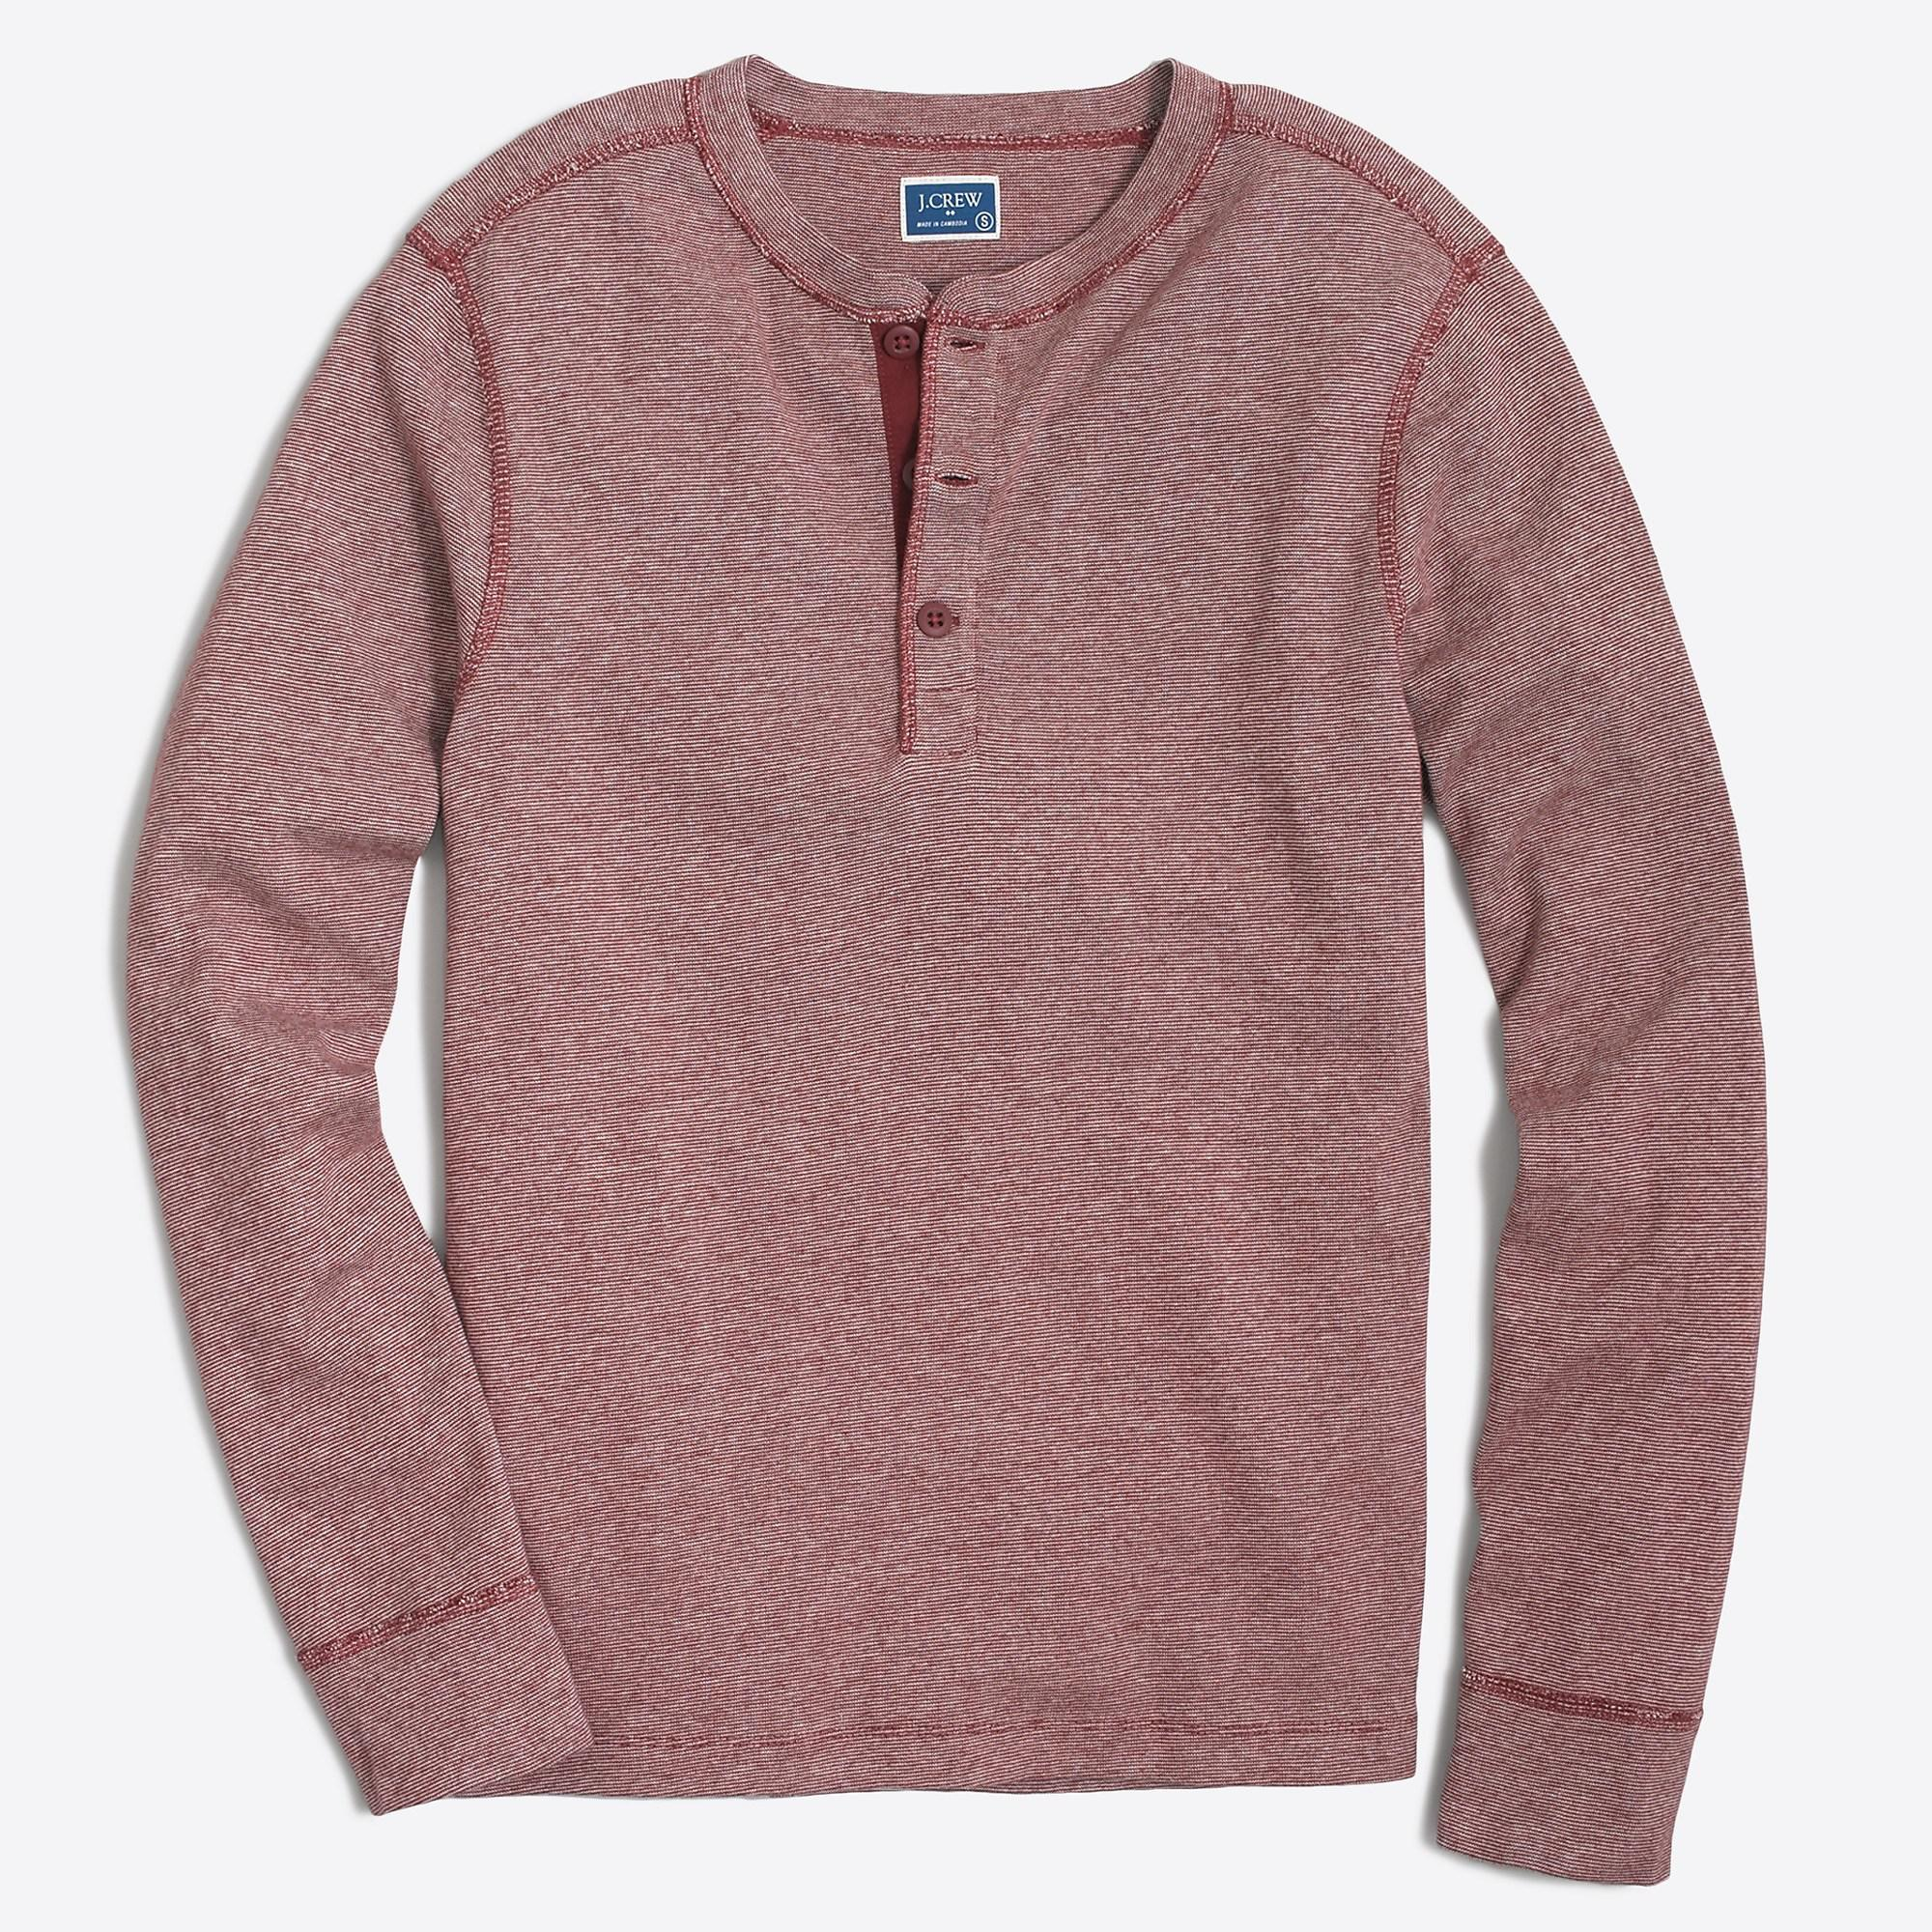 092a0f36 Lyst - J.Crew Twisted Rib Henley in Purple for Men